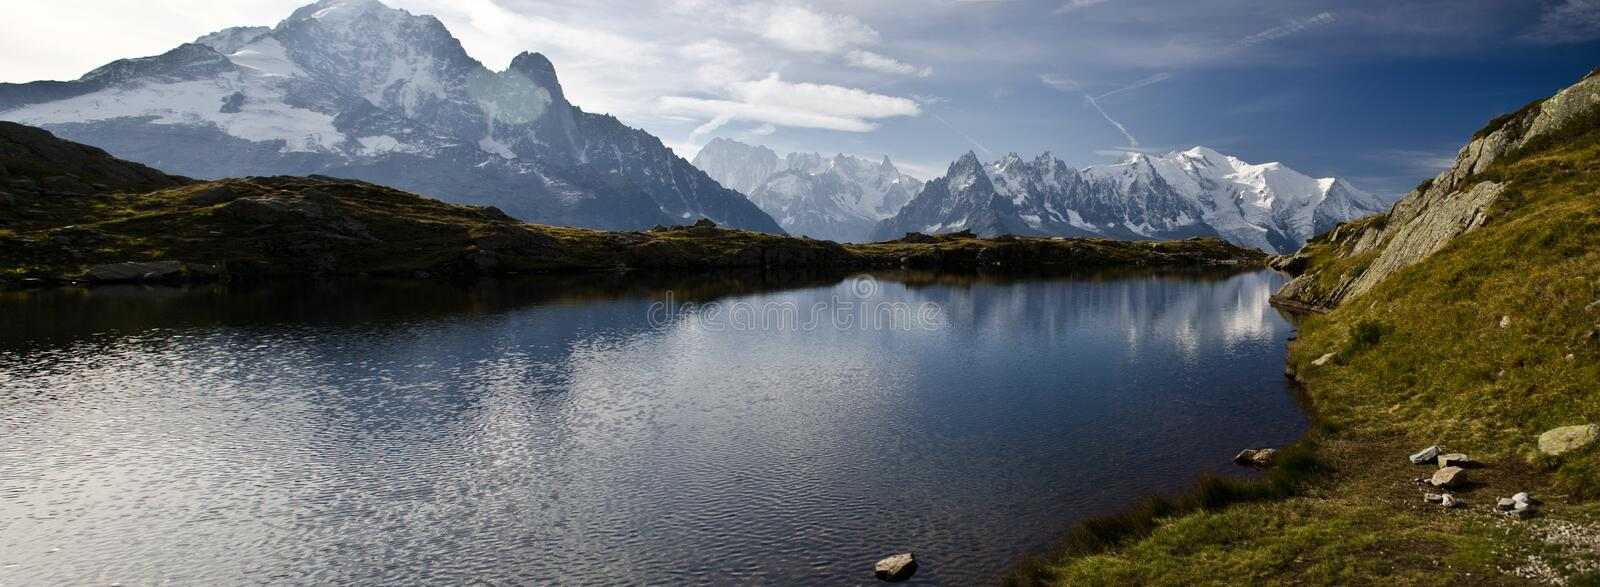 Alpine lake and mountains royalty free stock photography